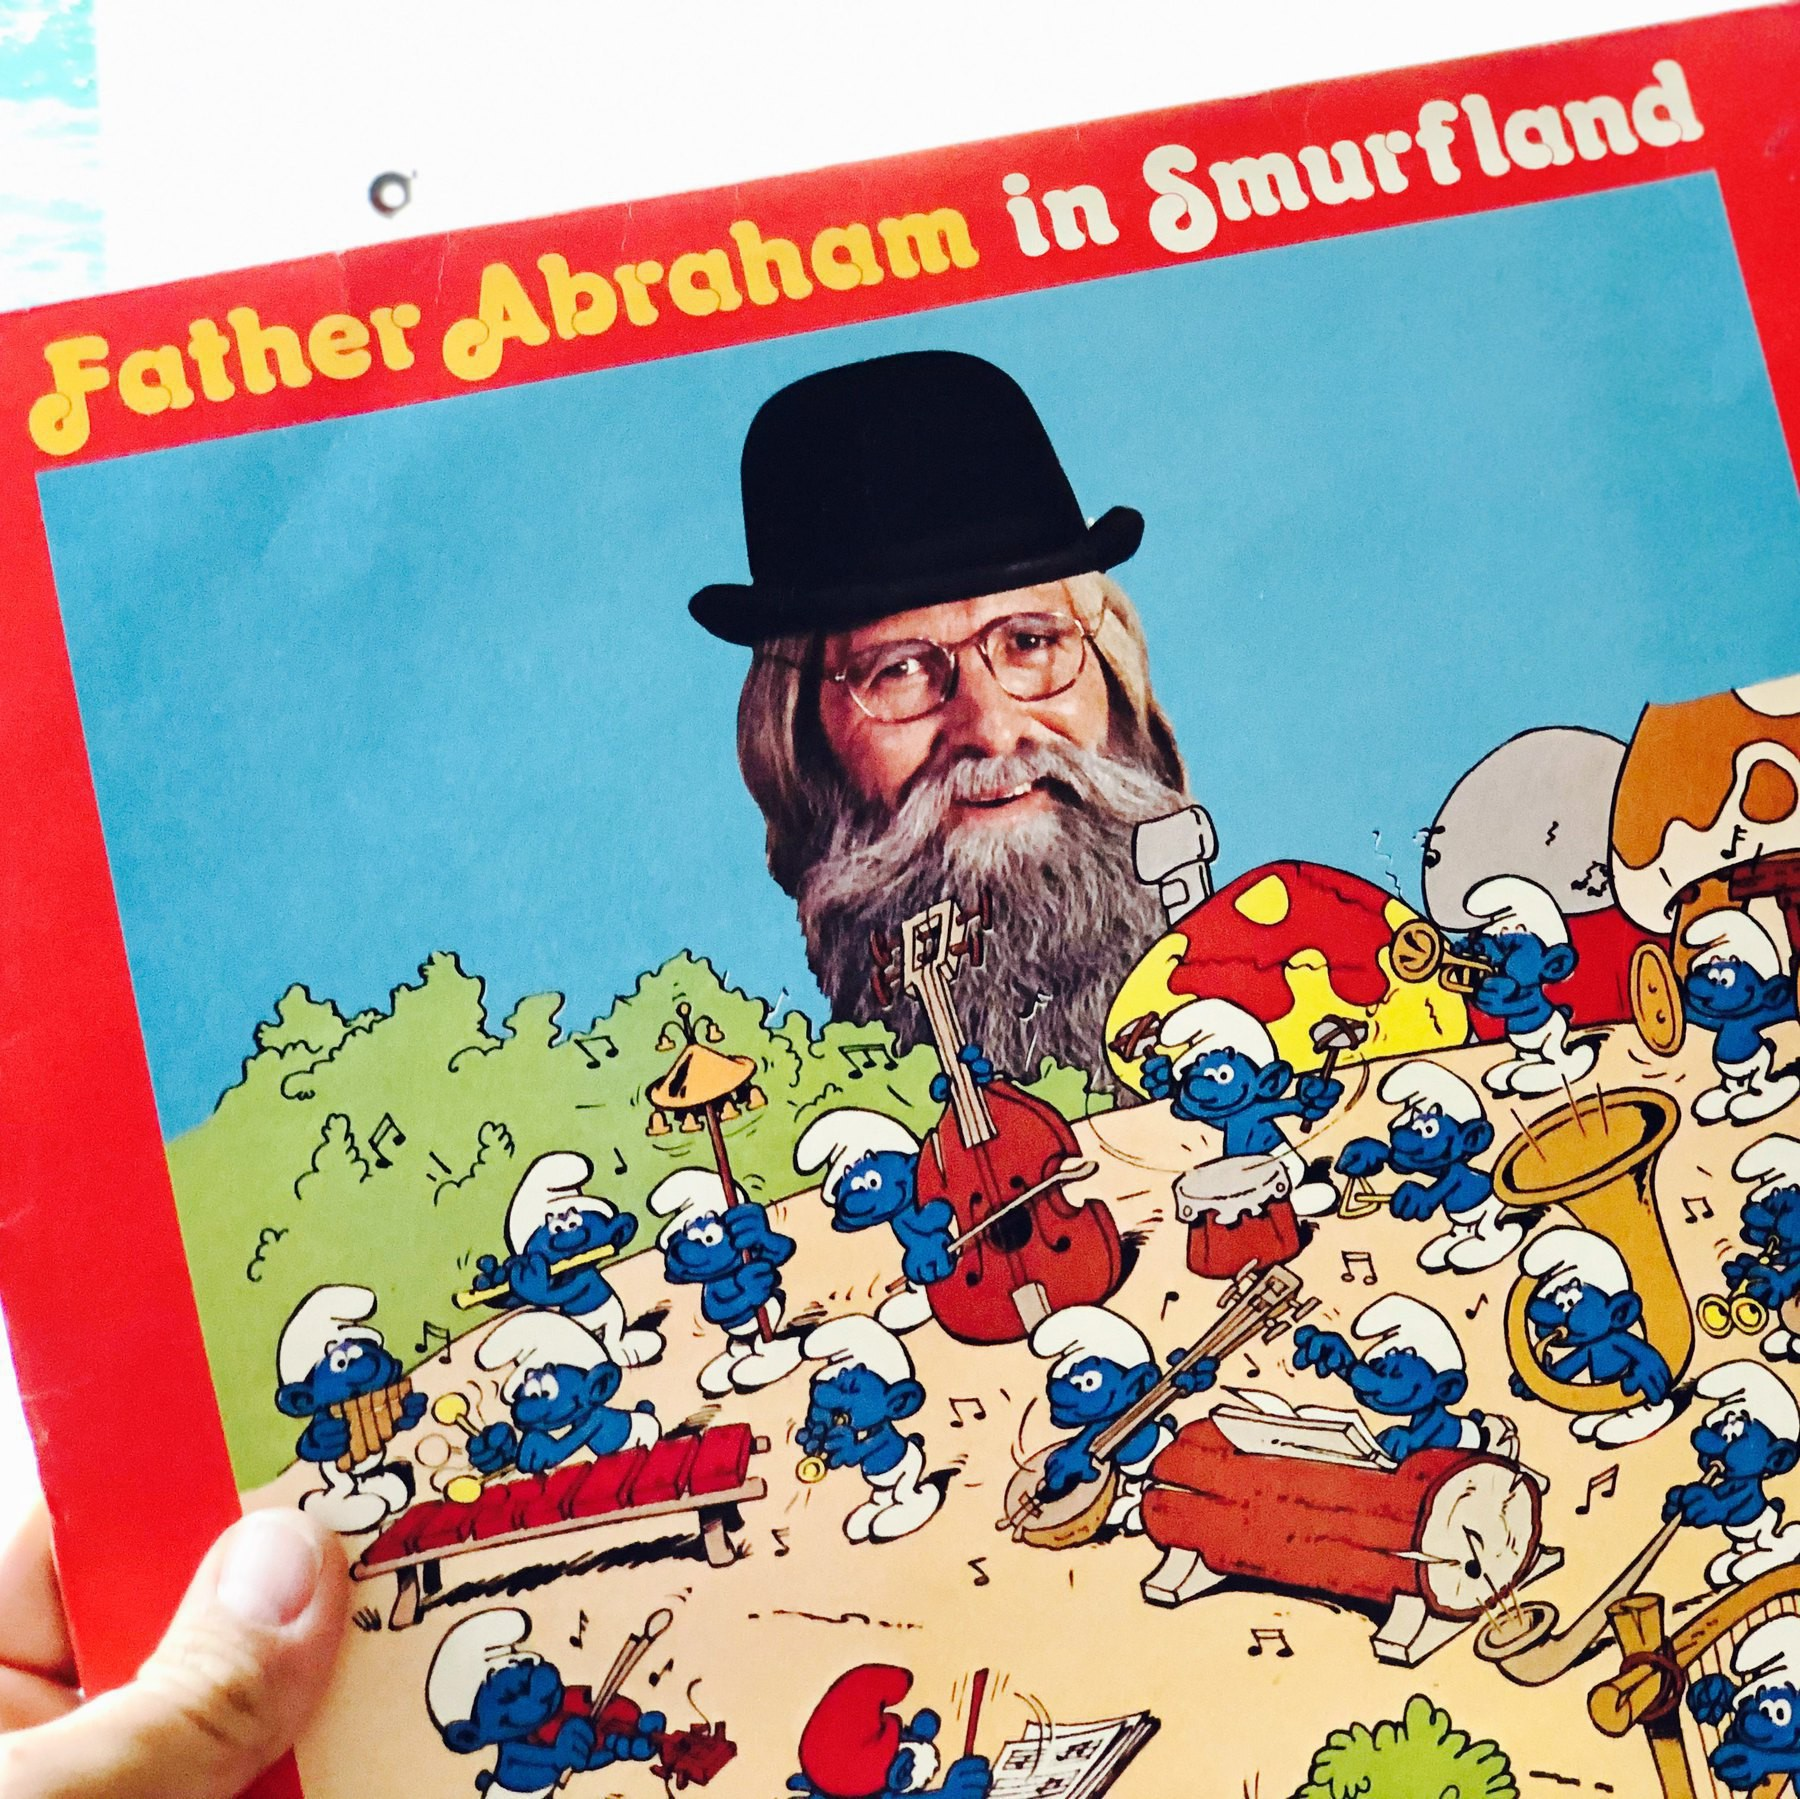 the sleeve of the 1978 album Father Abraham in Smurfland.